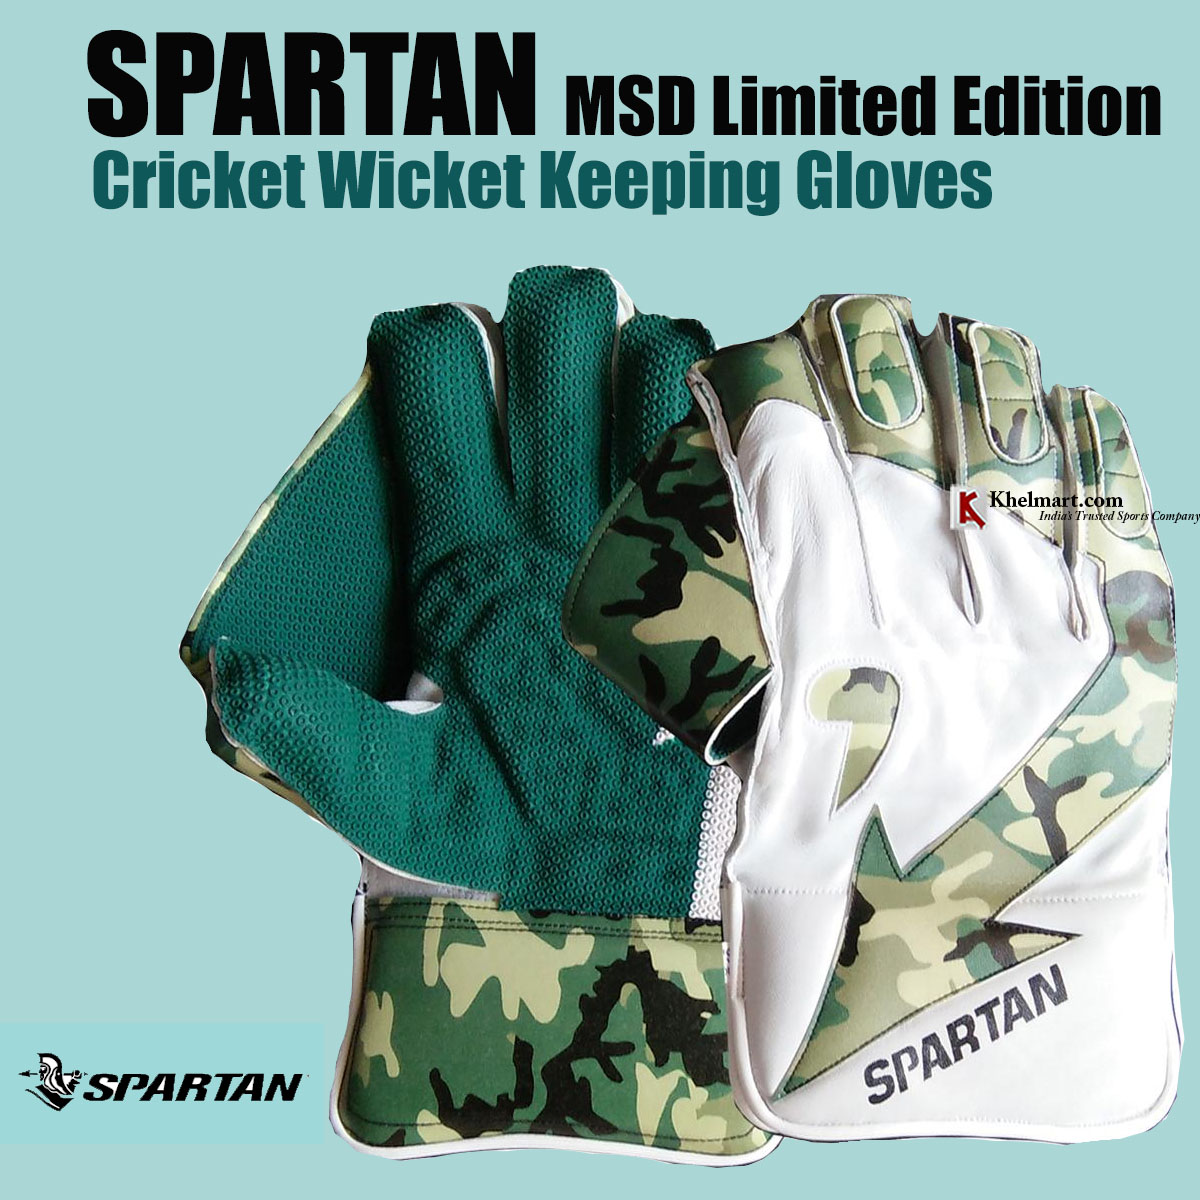 Spartan_MSD_Limited_Edition_Wicket_Keeping_Gloves_10.jpg